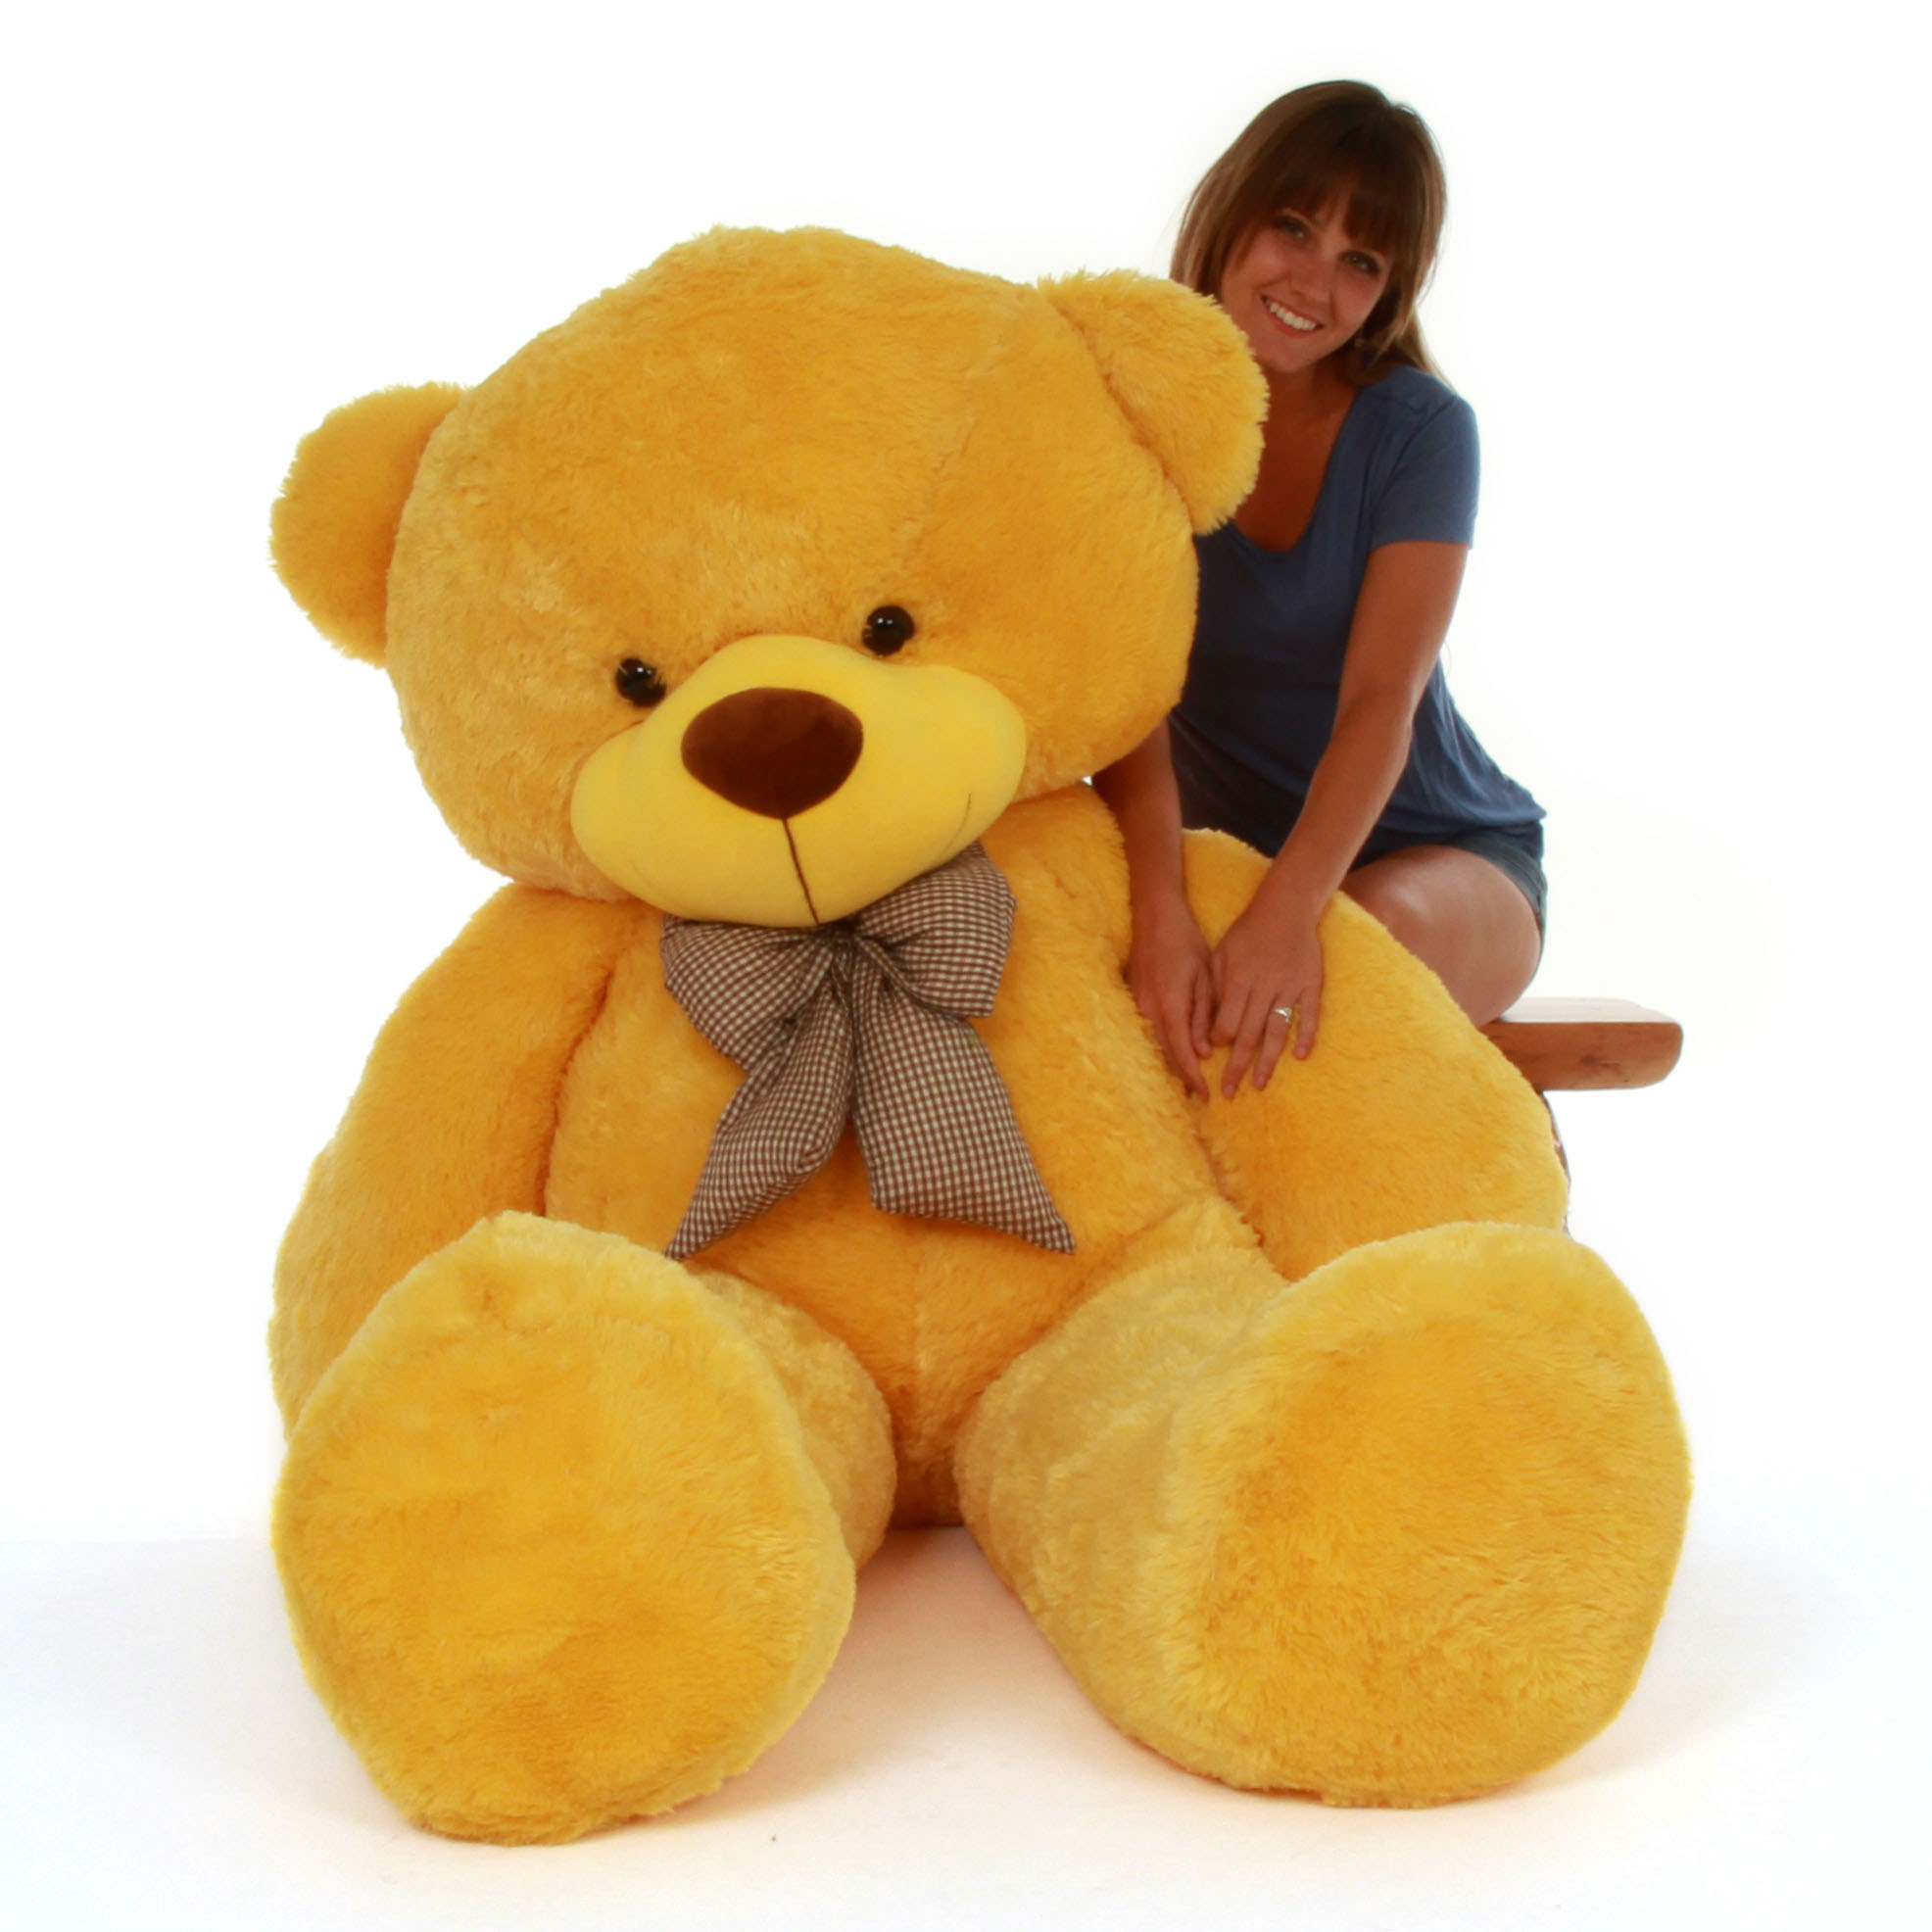 daisy-cuddles-adorable-huge-72in-yellow-teddy-bear-smiles-and-love-so-big-soft-and-huggable.jpg